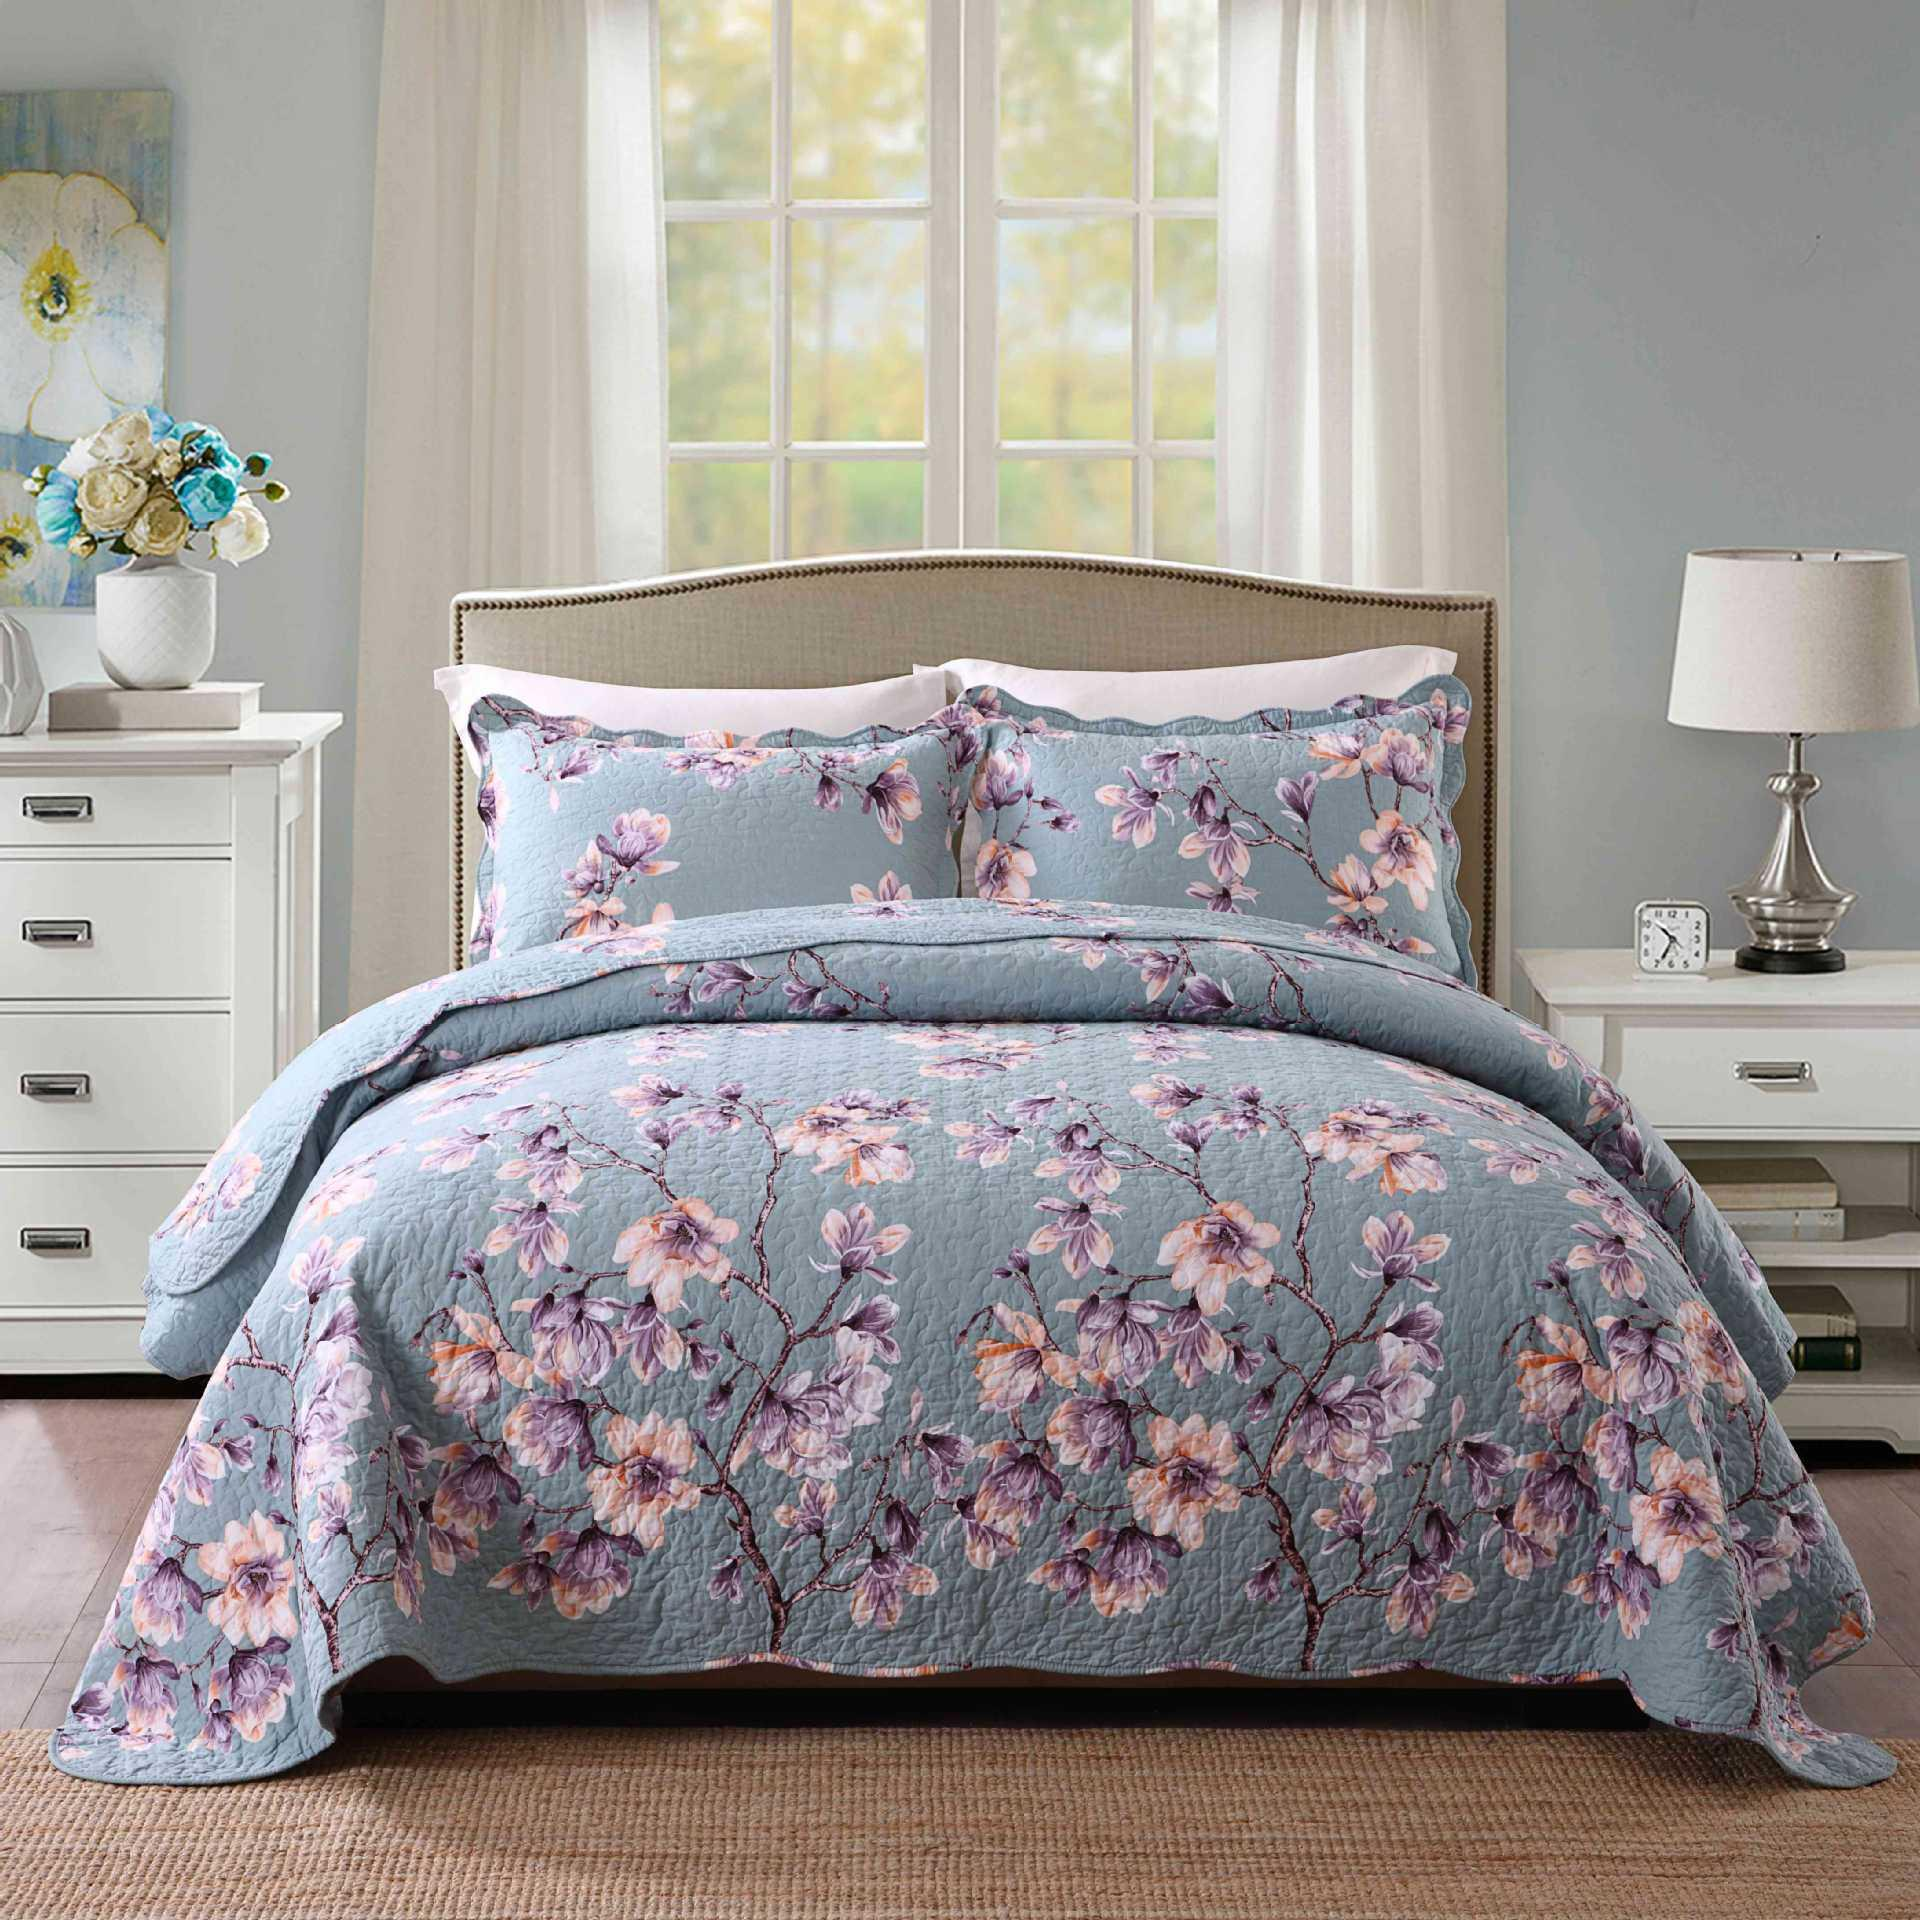 Cotton Bedcover Pillowcover Sets Kingsize 230x250cm Twill Quilts Quilting Quality Blue Embroidery Flower Bedspread Coverlets Bedspreads Uk Candlewick Bedspread From Queenbedding 138 7 Dhgate Com